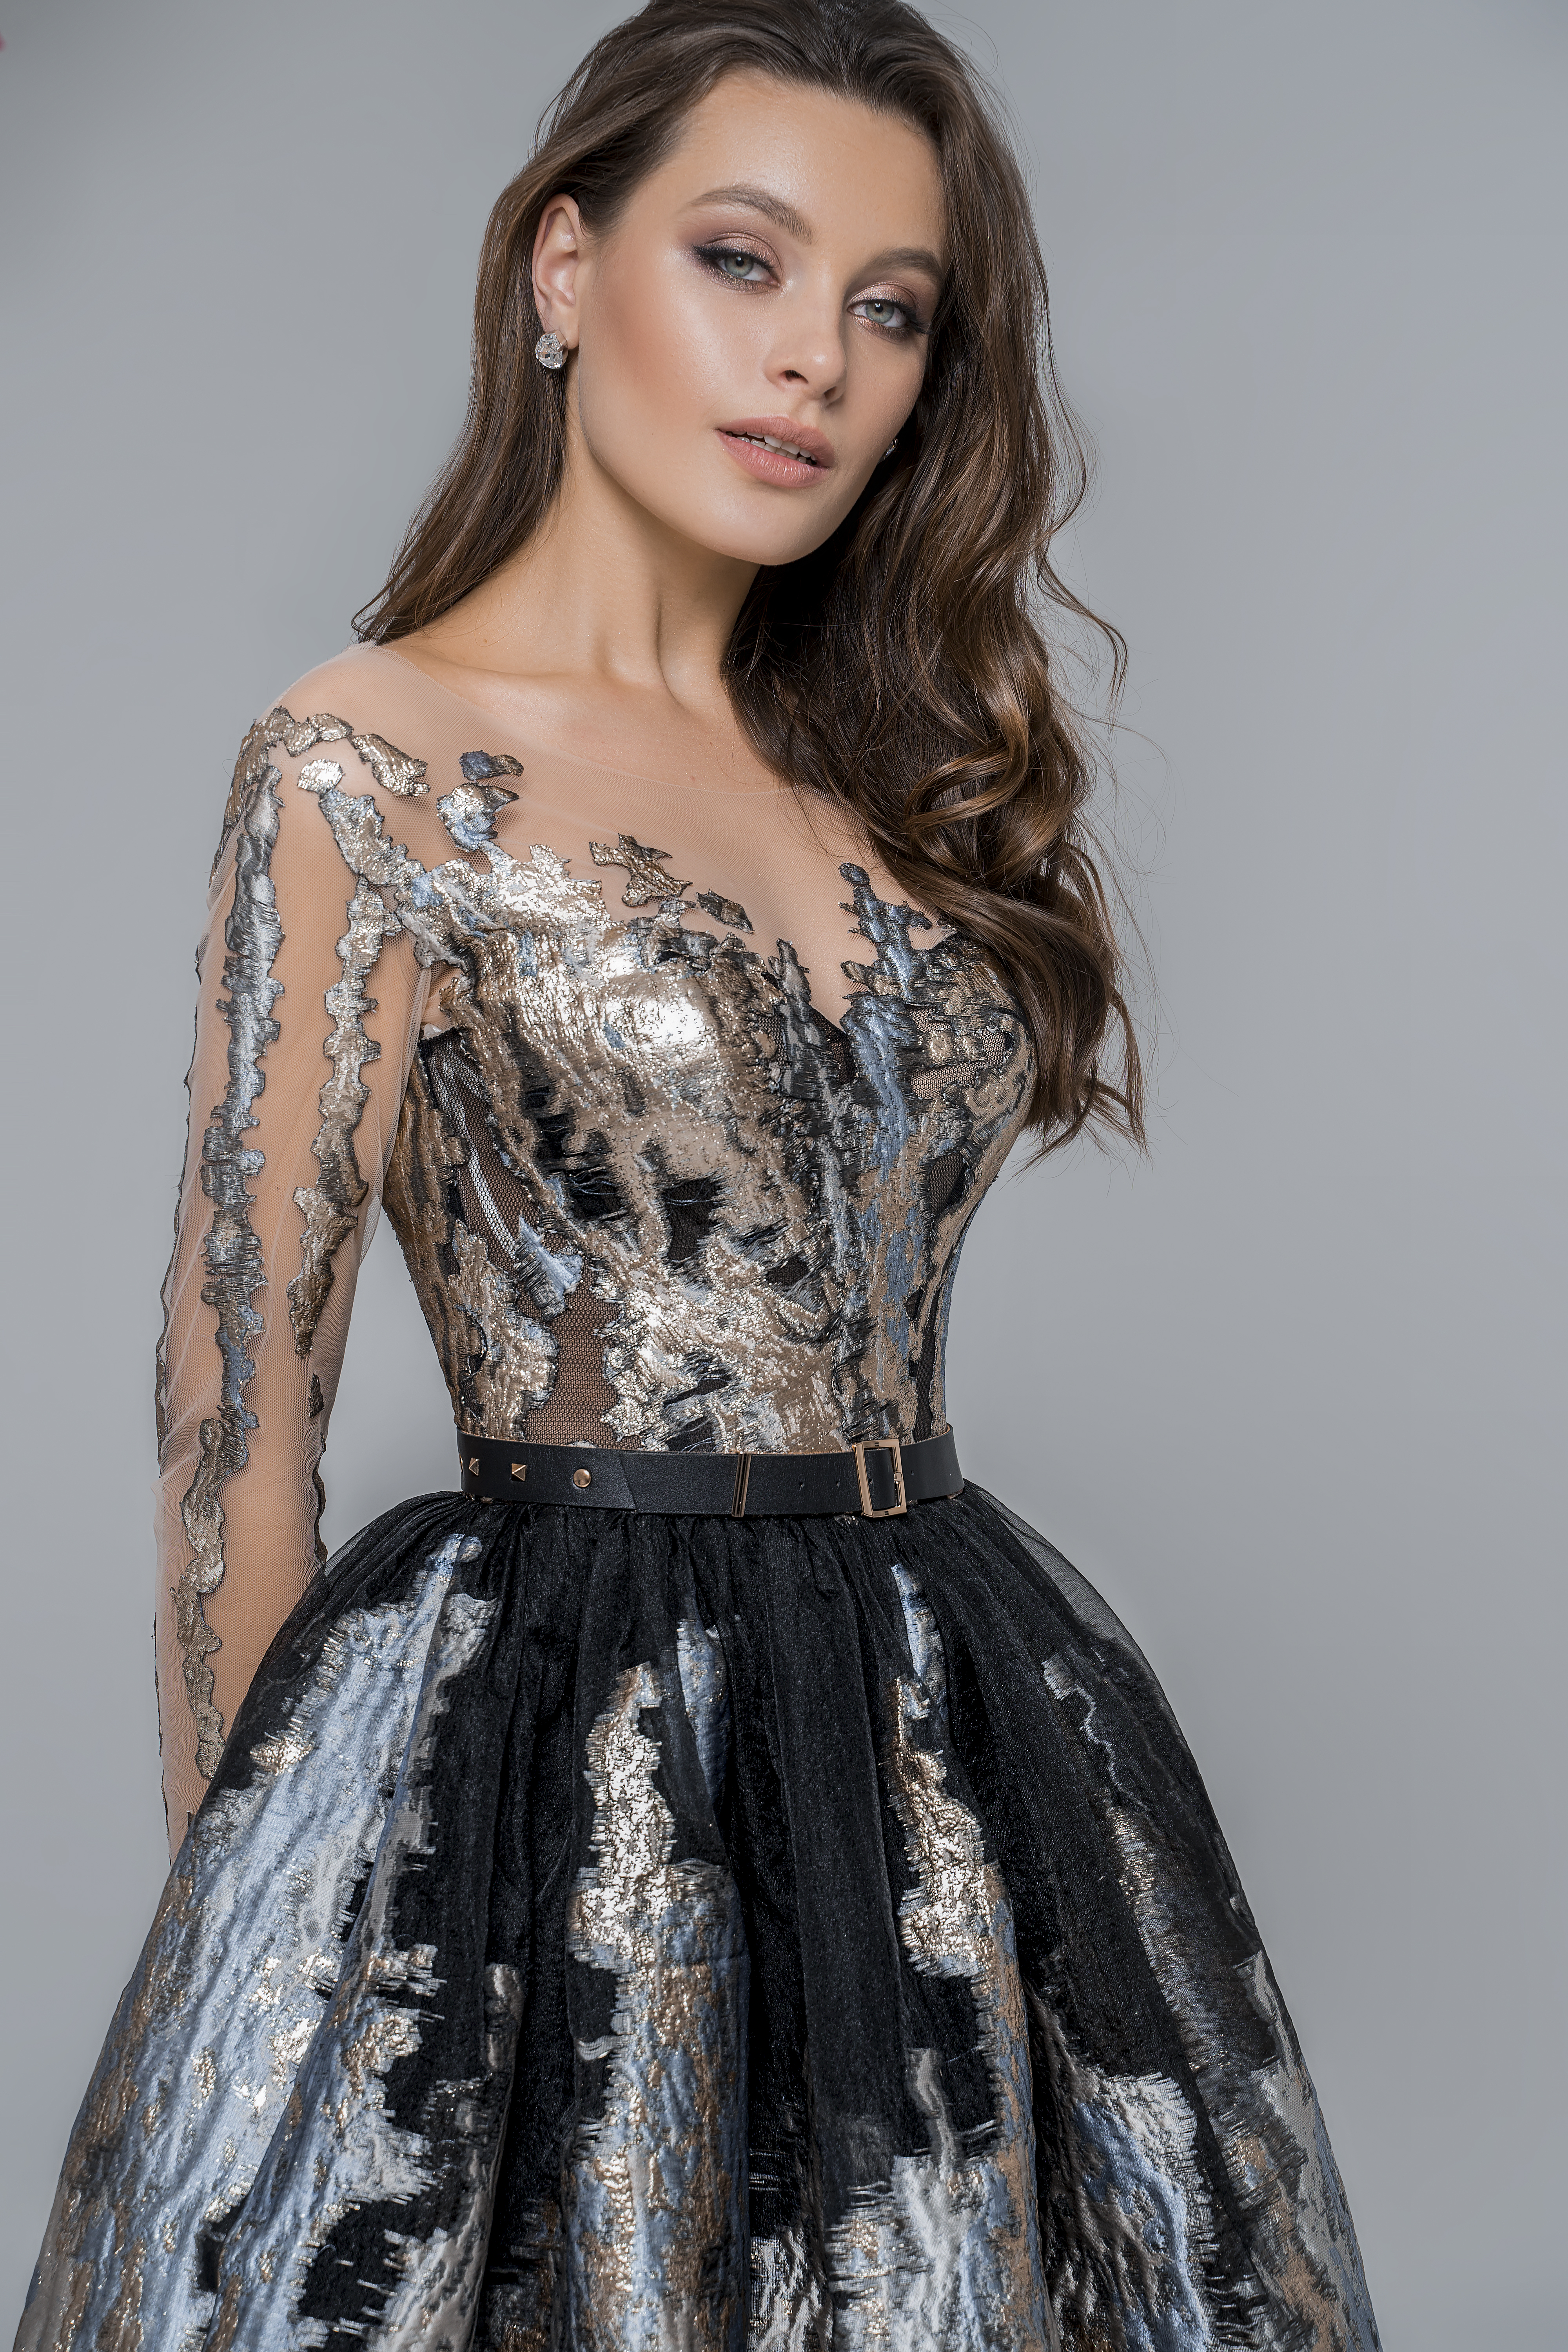 Evening dresses 1818 Silhouette  A Line  Color  Gold  Black  Neckline  Sweetheart  Portrait (V-neck)  Illusion  Sleeves  Long Sleeves  Fitted  Train  No train